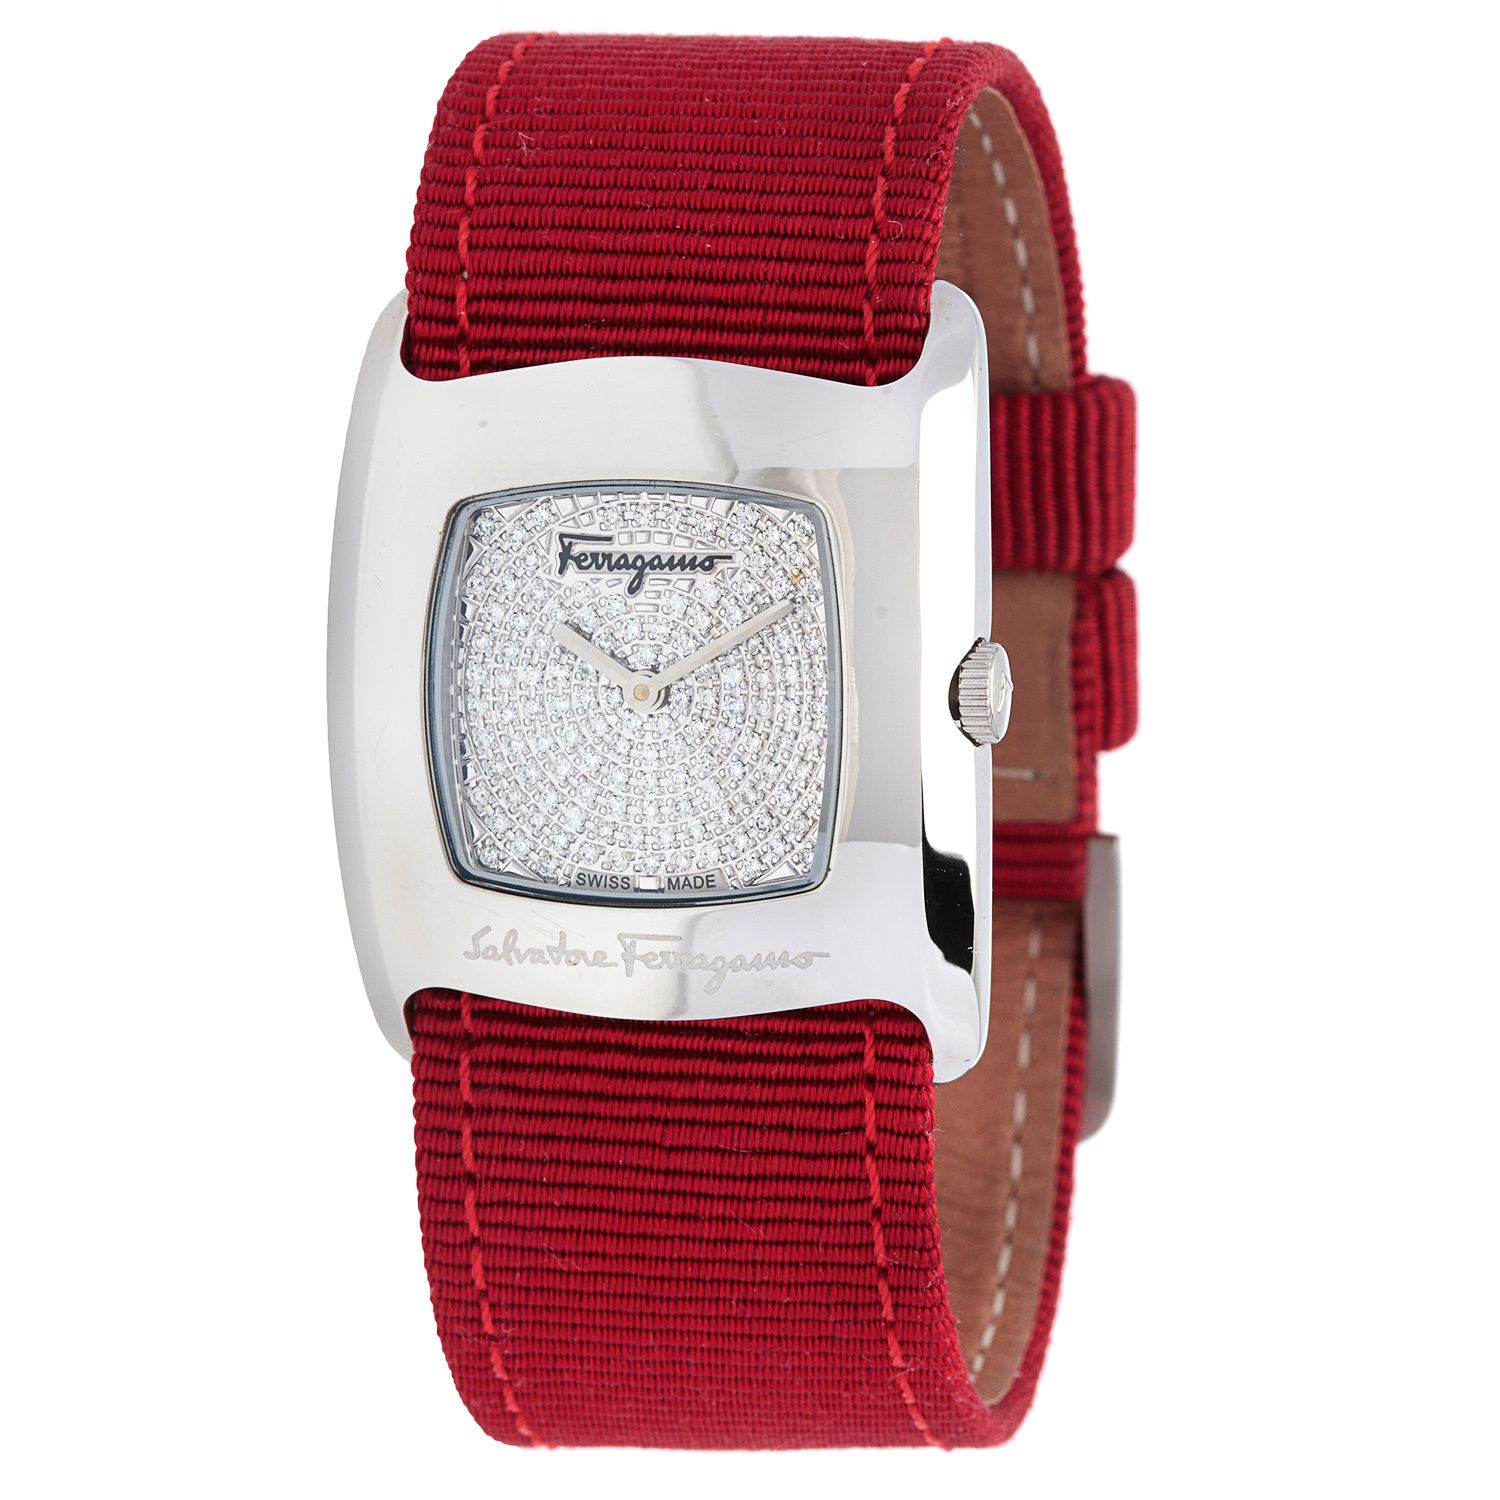 en face watch tous drive de faces reloj fun pr silicona blanca watches